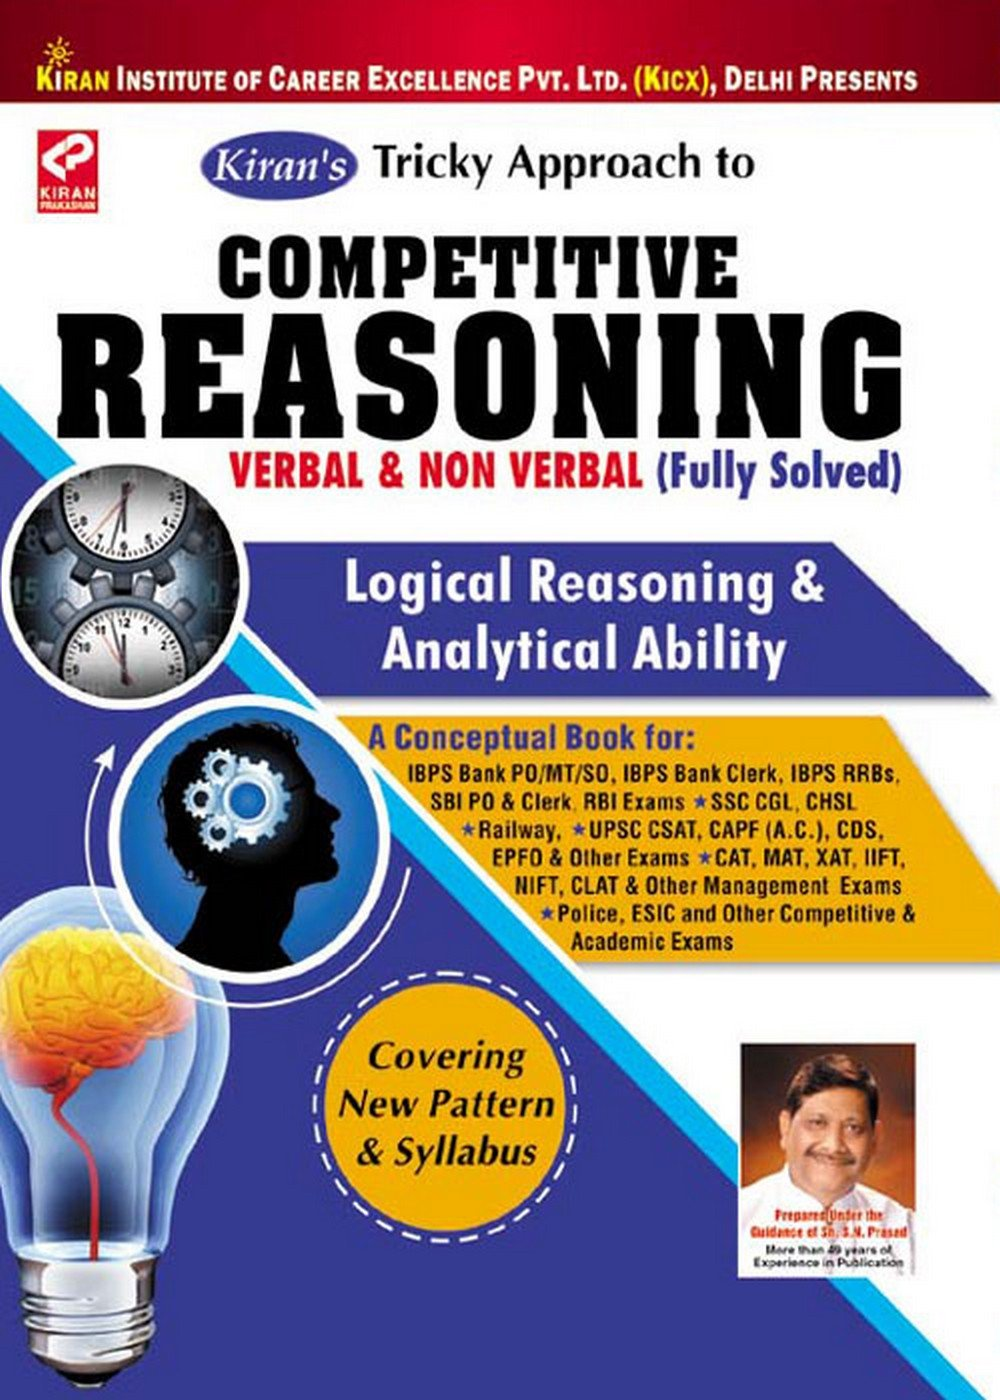 buy k s tricky approach to competitive reasoning verbal non buy k s tricky approach to competitive reasoning verbal non verbal fully solved 7000 objective question logical reasoning analytical ability